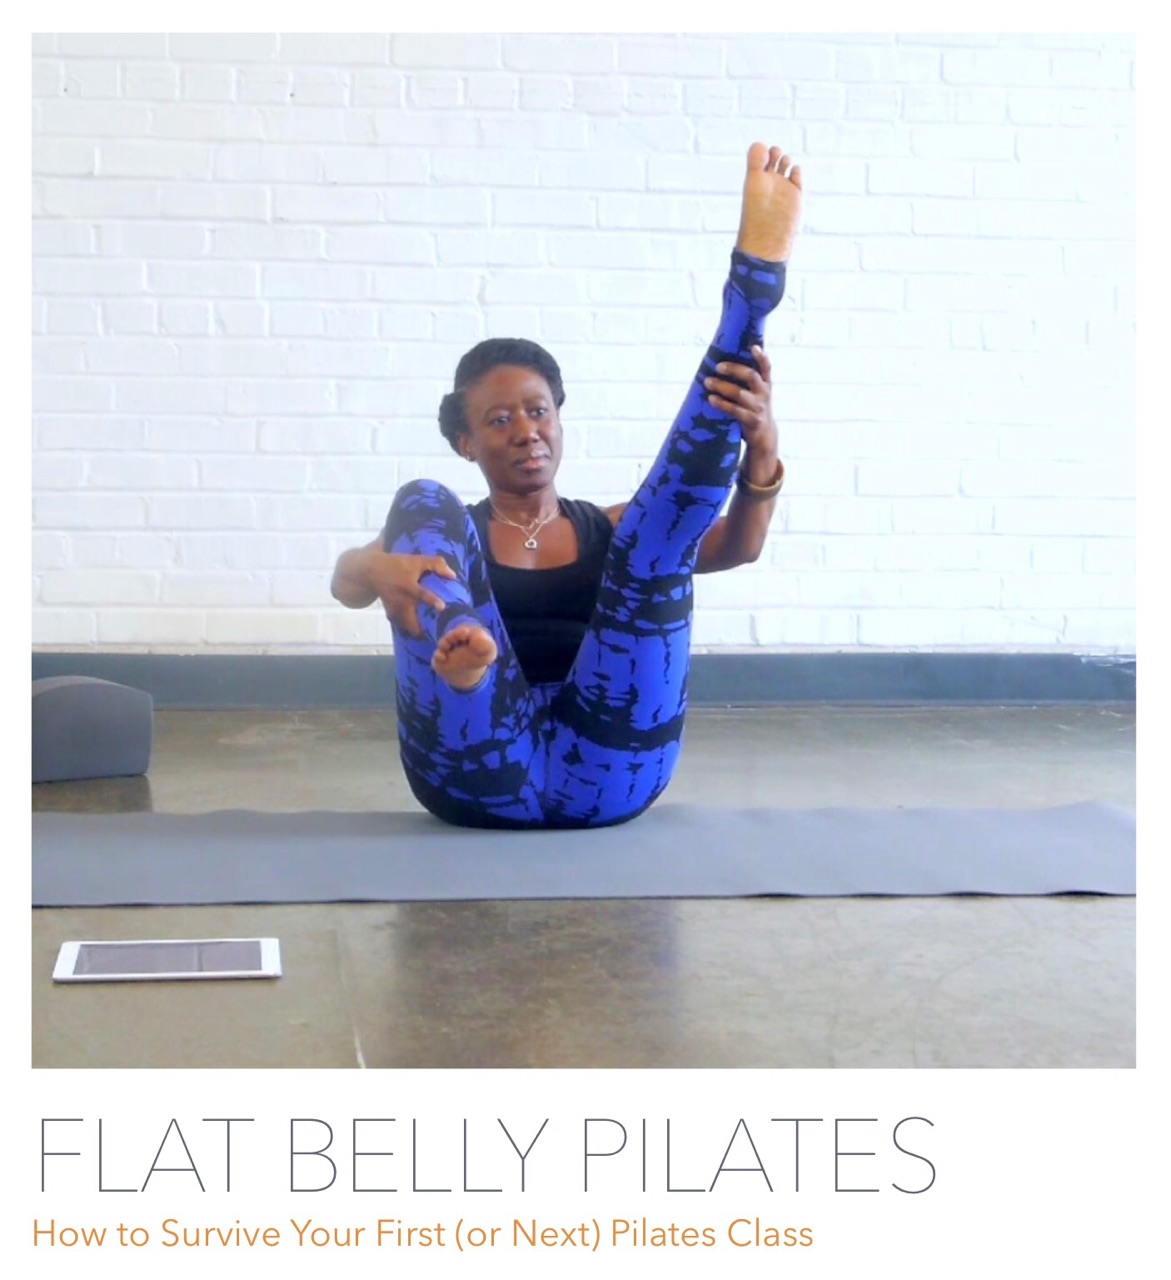 How to Survive Your Next Pilates Class